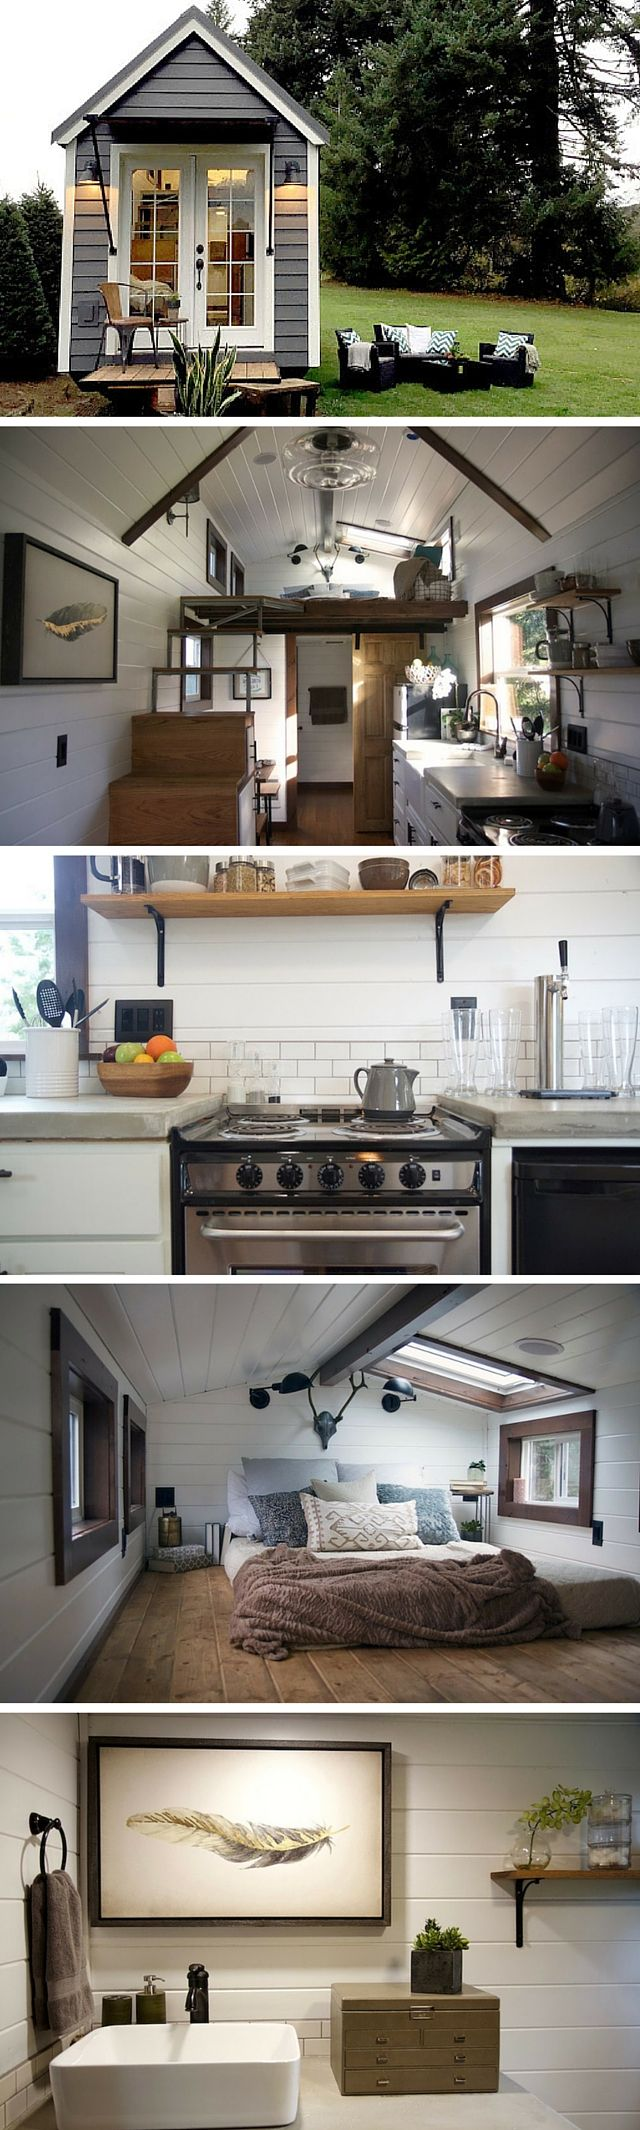 View toward kitchen the alpha tiny home by new frontier tiny homes - The Nw Haven Tiny House By Tiny Heirloom